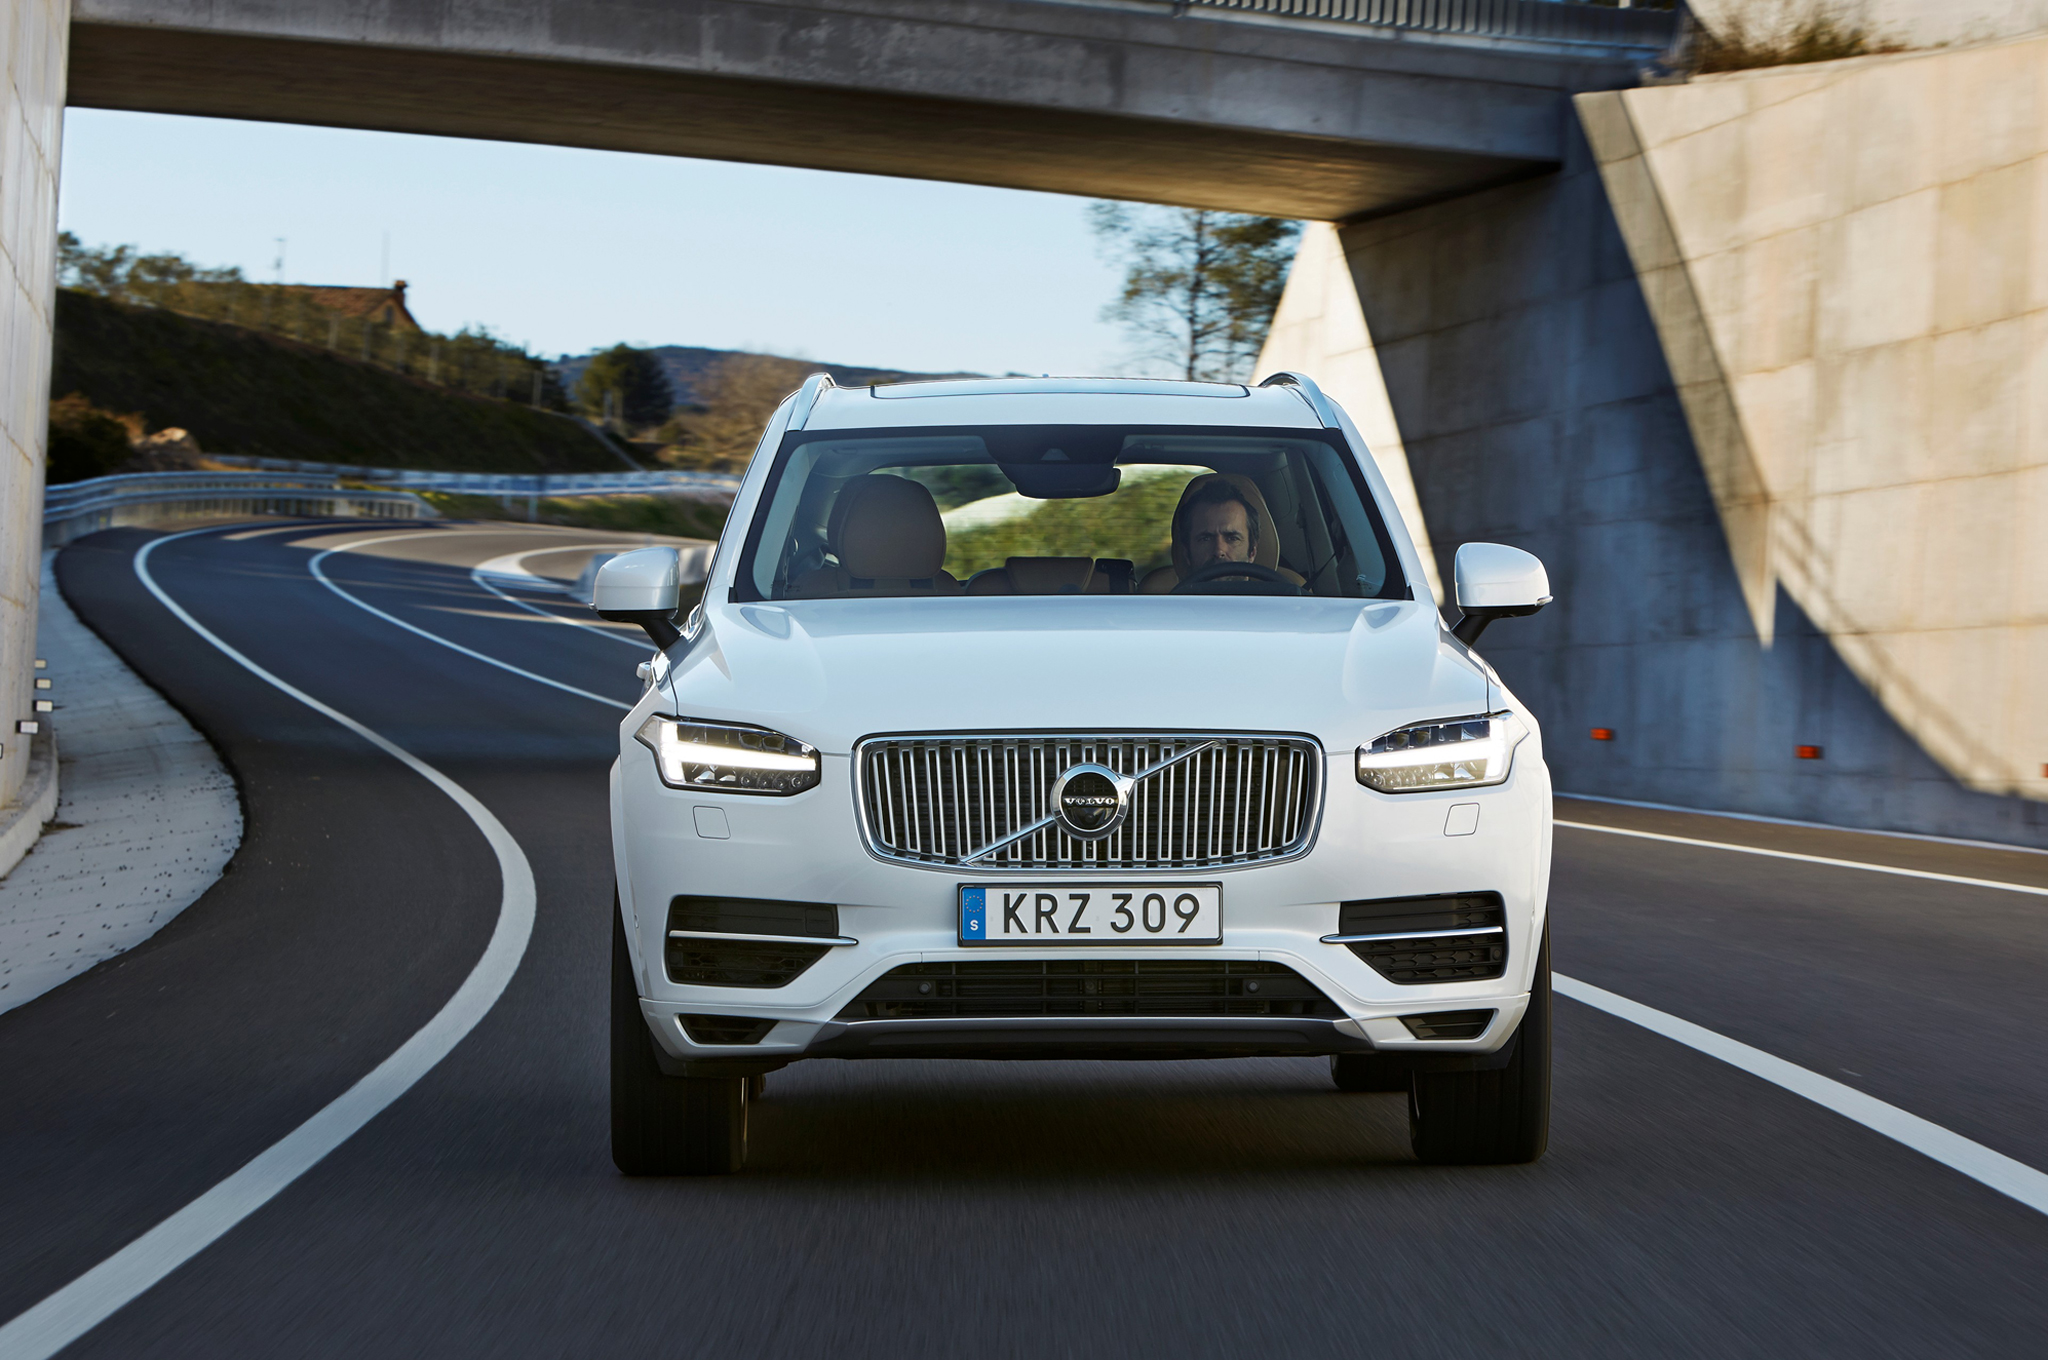 2016 Volvo Xc90 T8 White Exterior Preview (View 11 of 18)